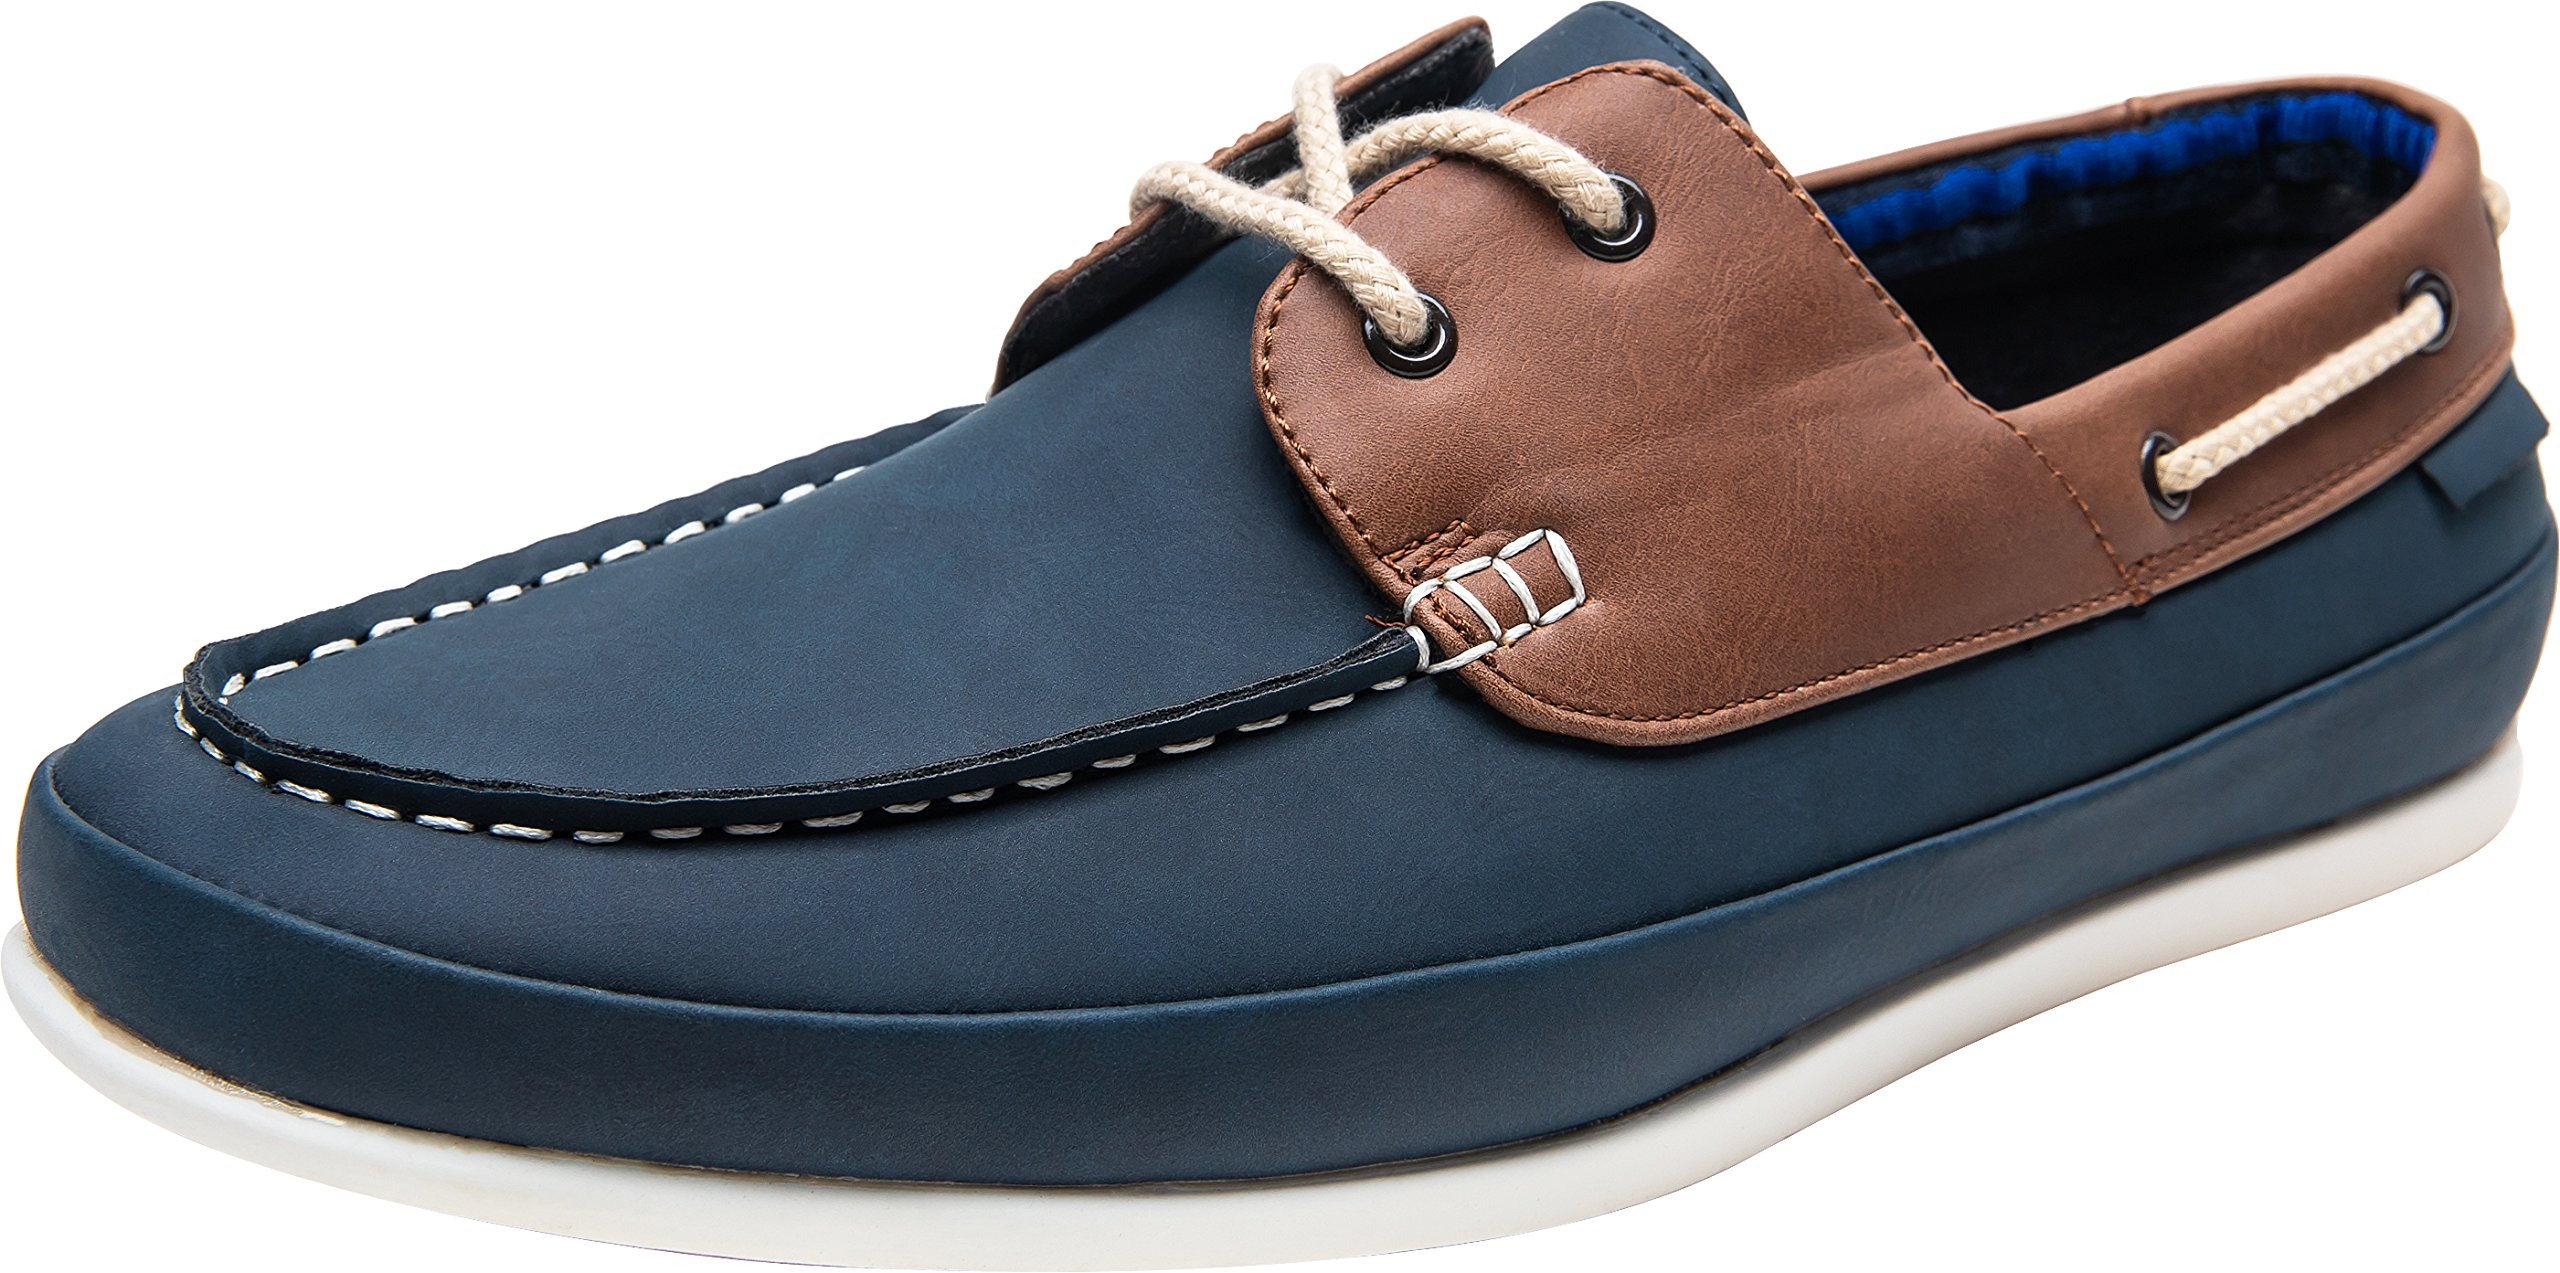 JOUSEN Men's Boat Shoes Casual Driving Moccasin Loafers (9,Blue)